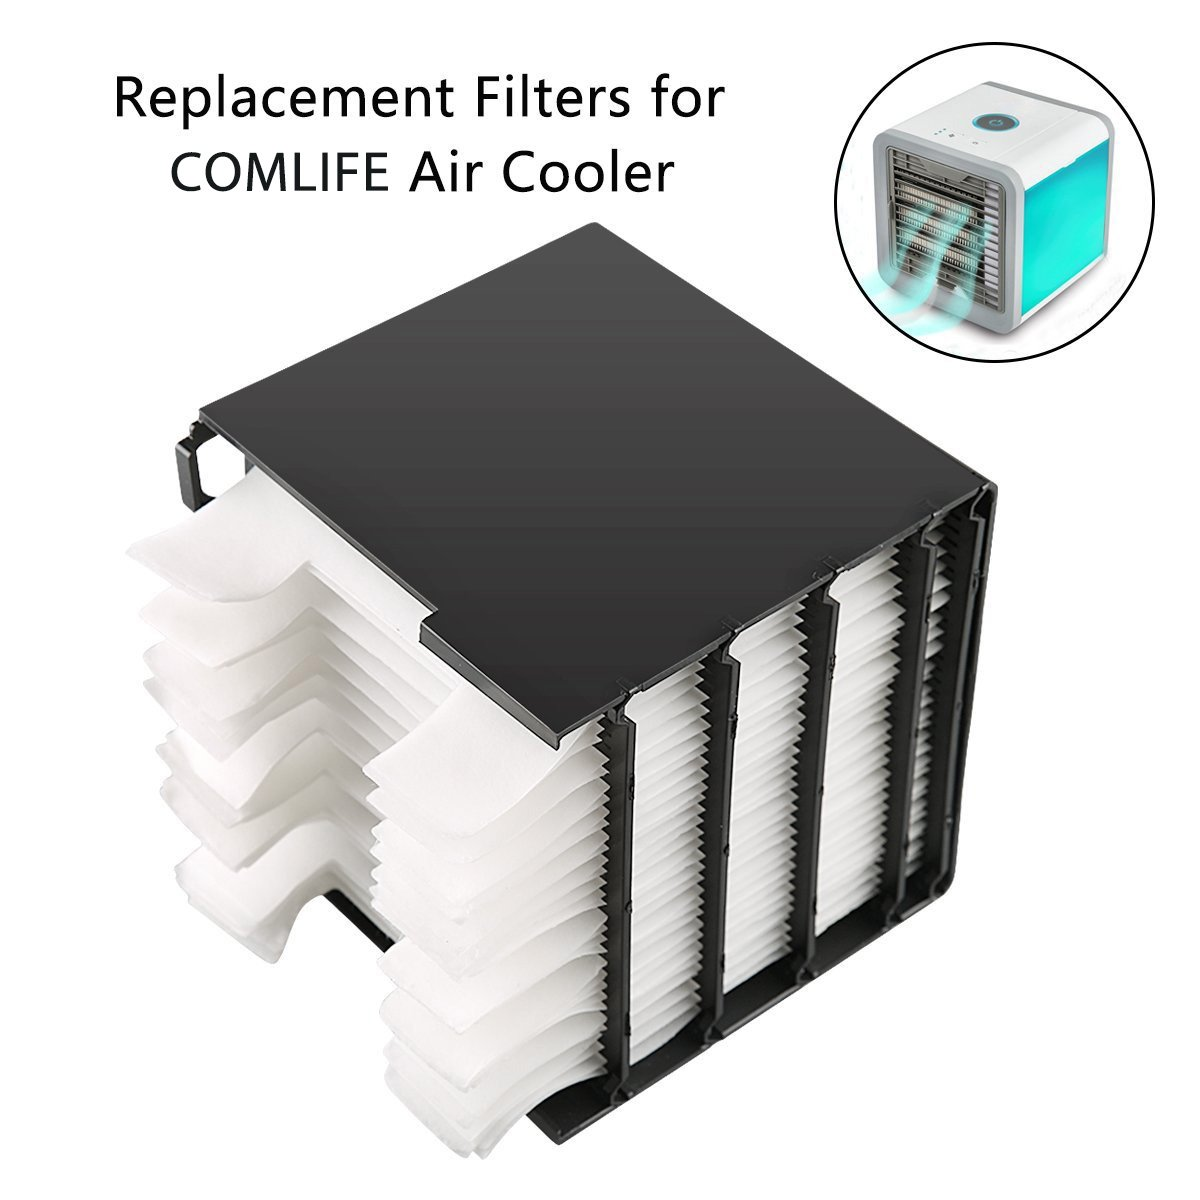 COMLIFE Evaporative Cartridge Replacement for Portable Air conditioner, Personal Air Cooler and Humidifier Filter